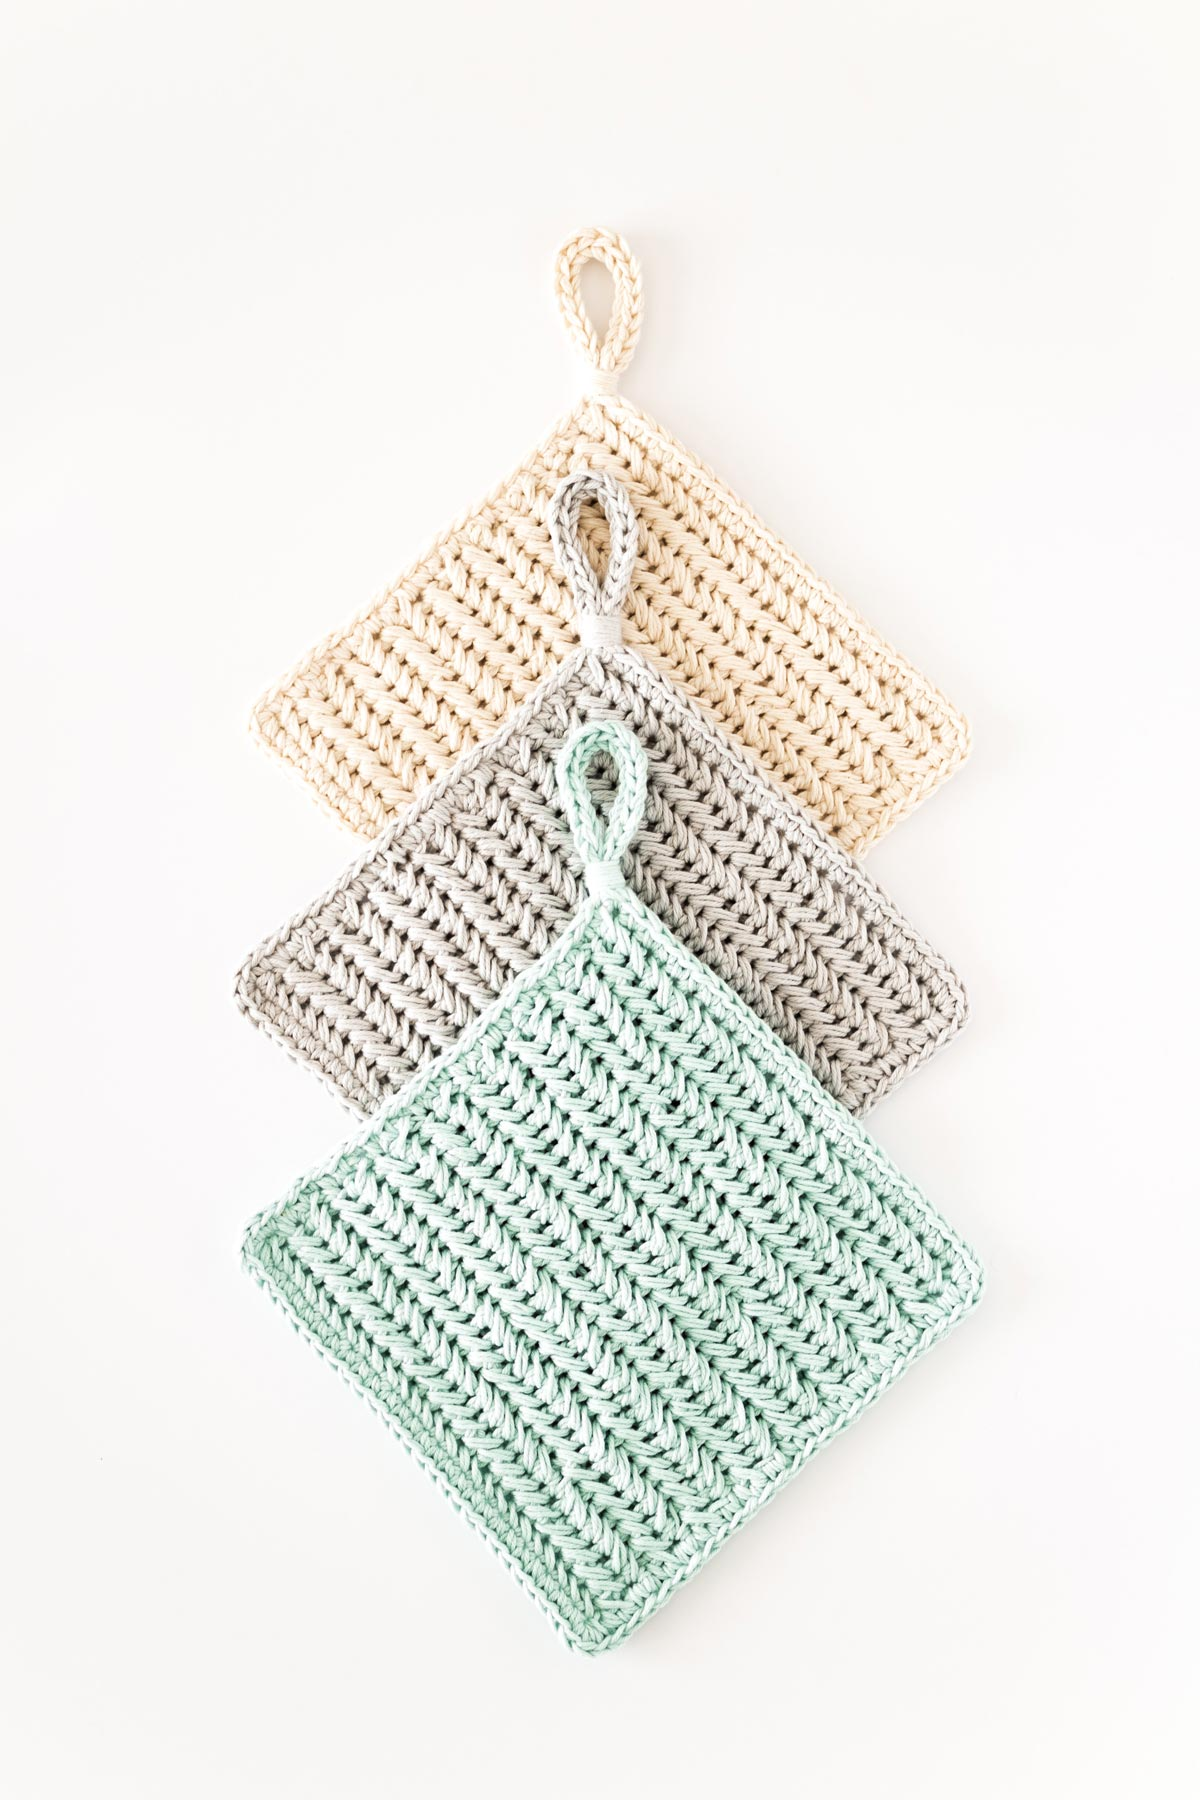 3 crochet pot holders in chevron single crochet stitch with loop handle in cream, light grey and mint cotton yarn